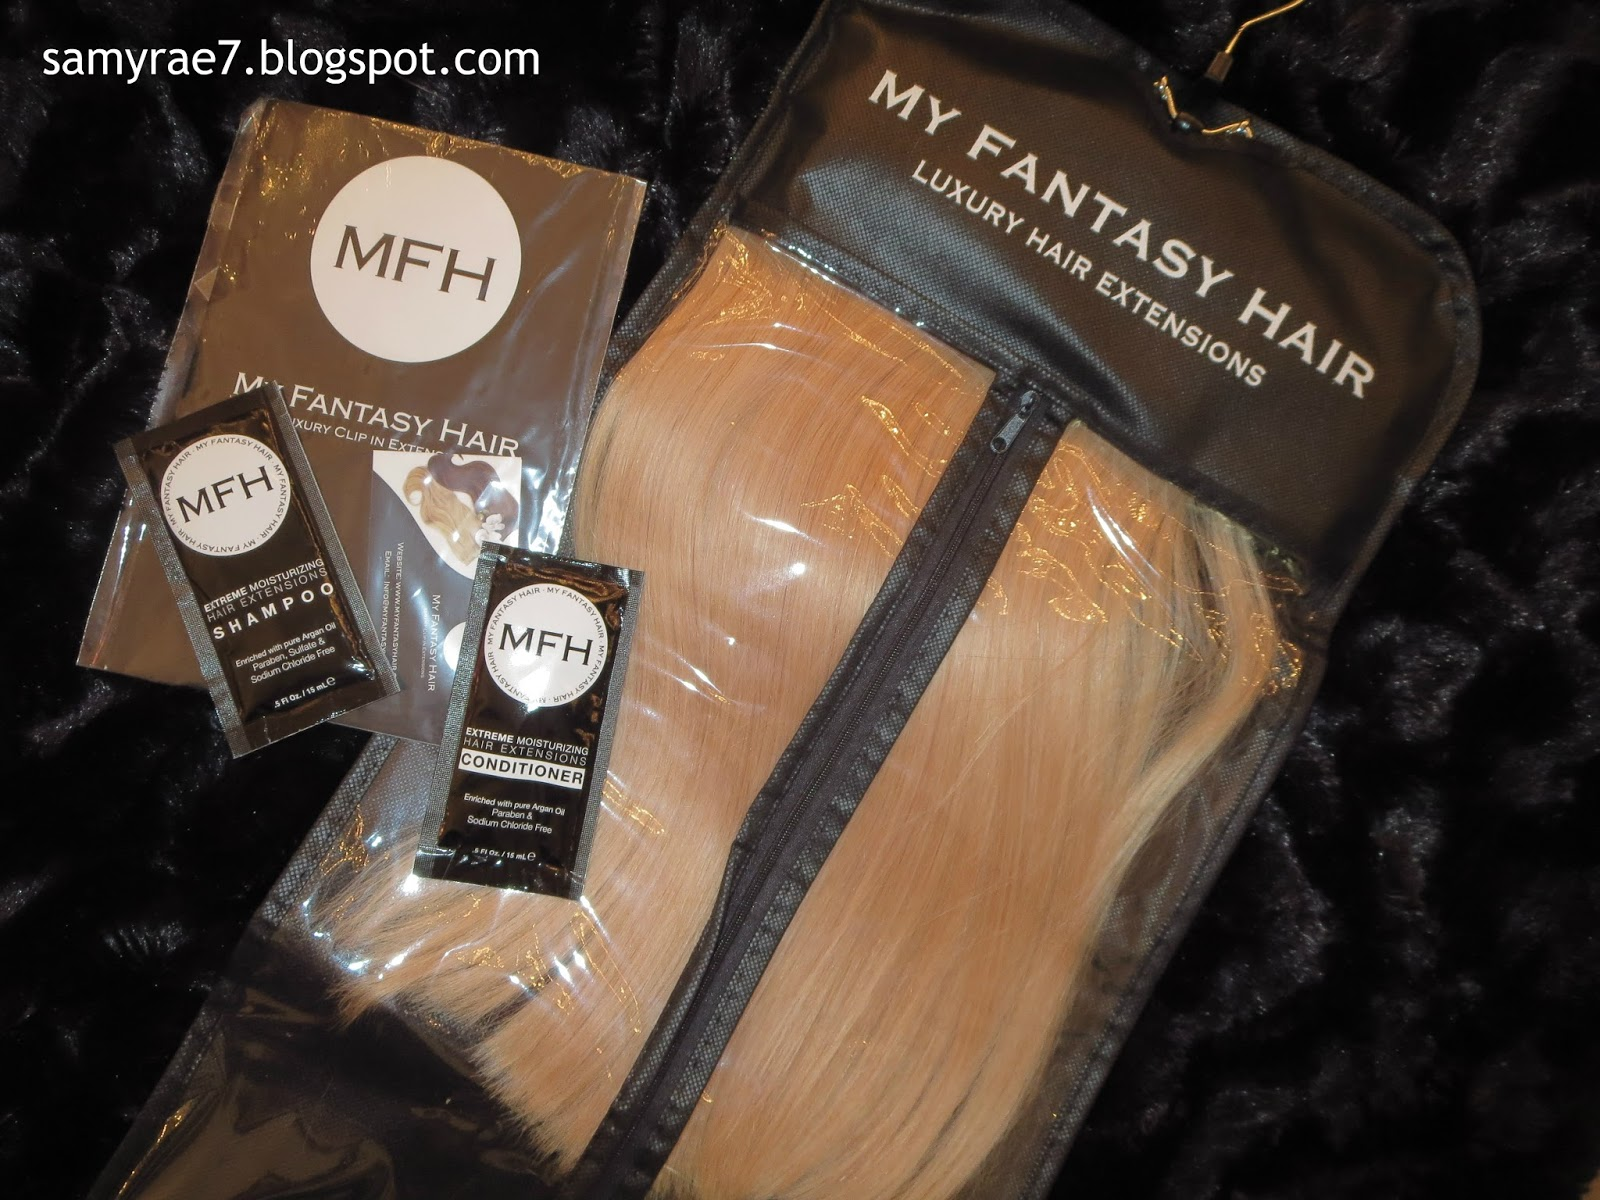 Samy rae my fantasy hair extensions strawberry blonde new you can also use the coupon code samantha for some money off your order pmusecretfo Gallery